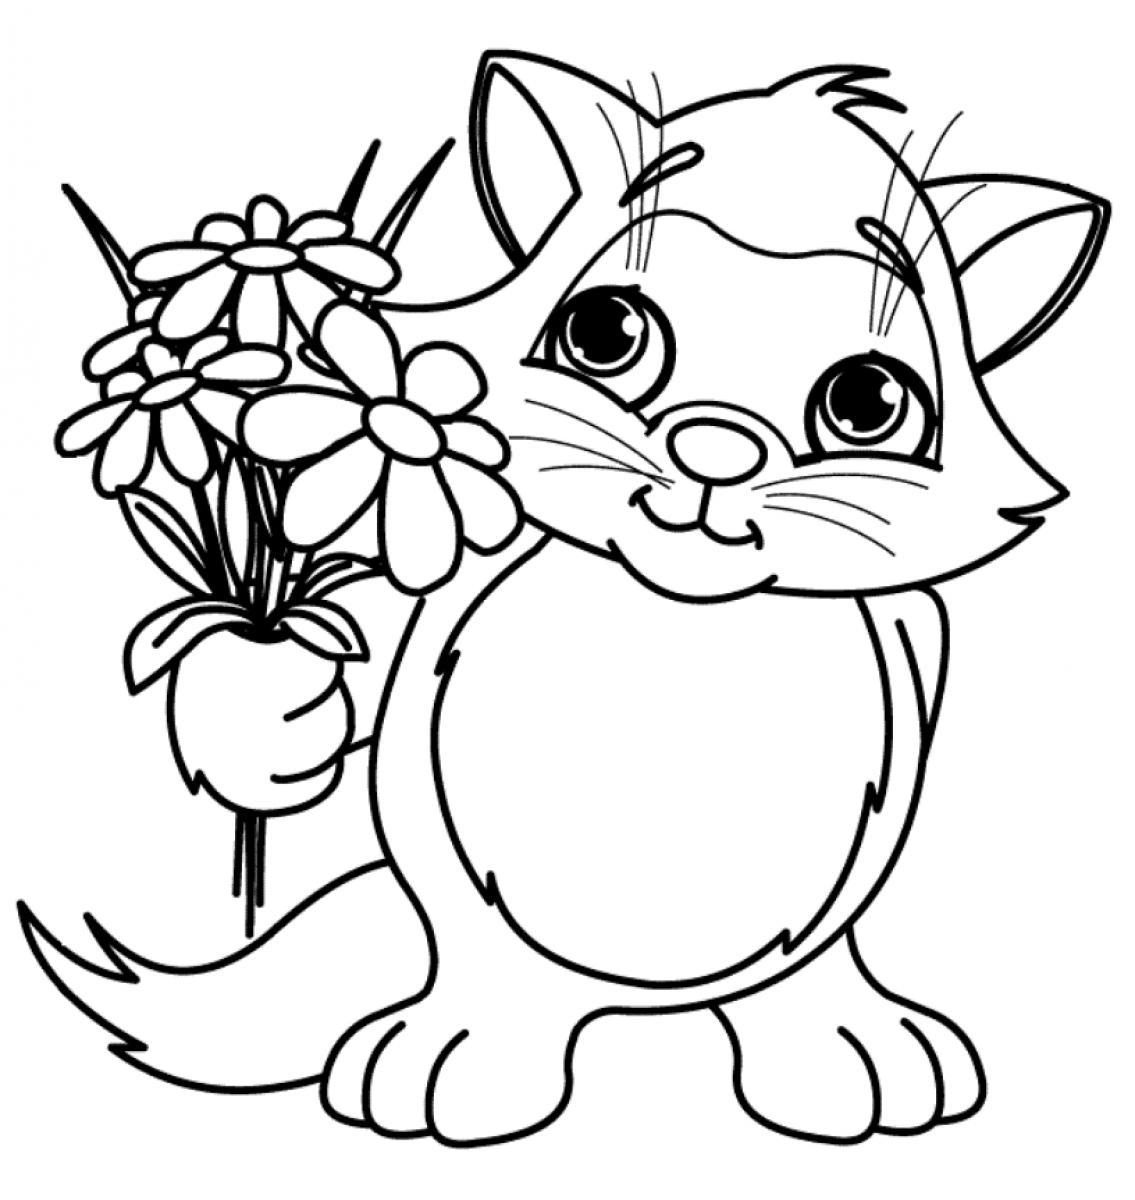 coloring kids clipart daisy girl colorable line art free clip art coloring kids clipart